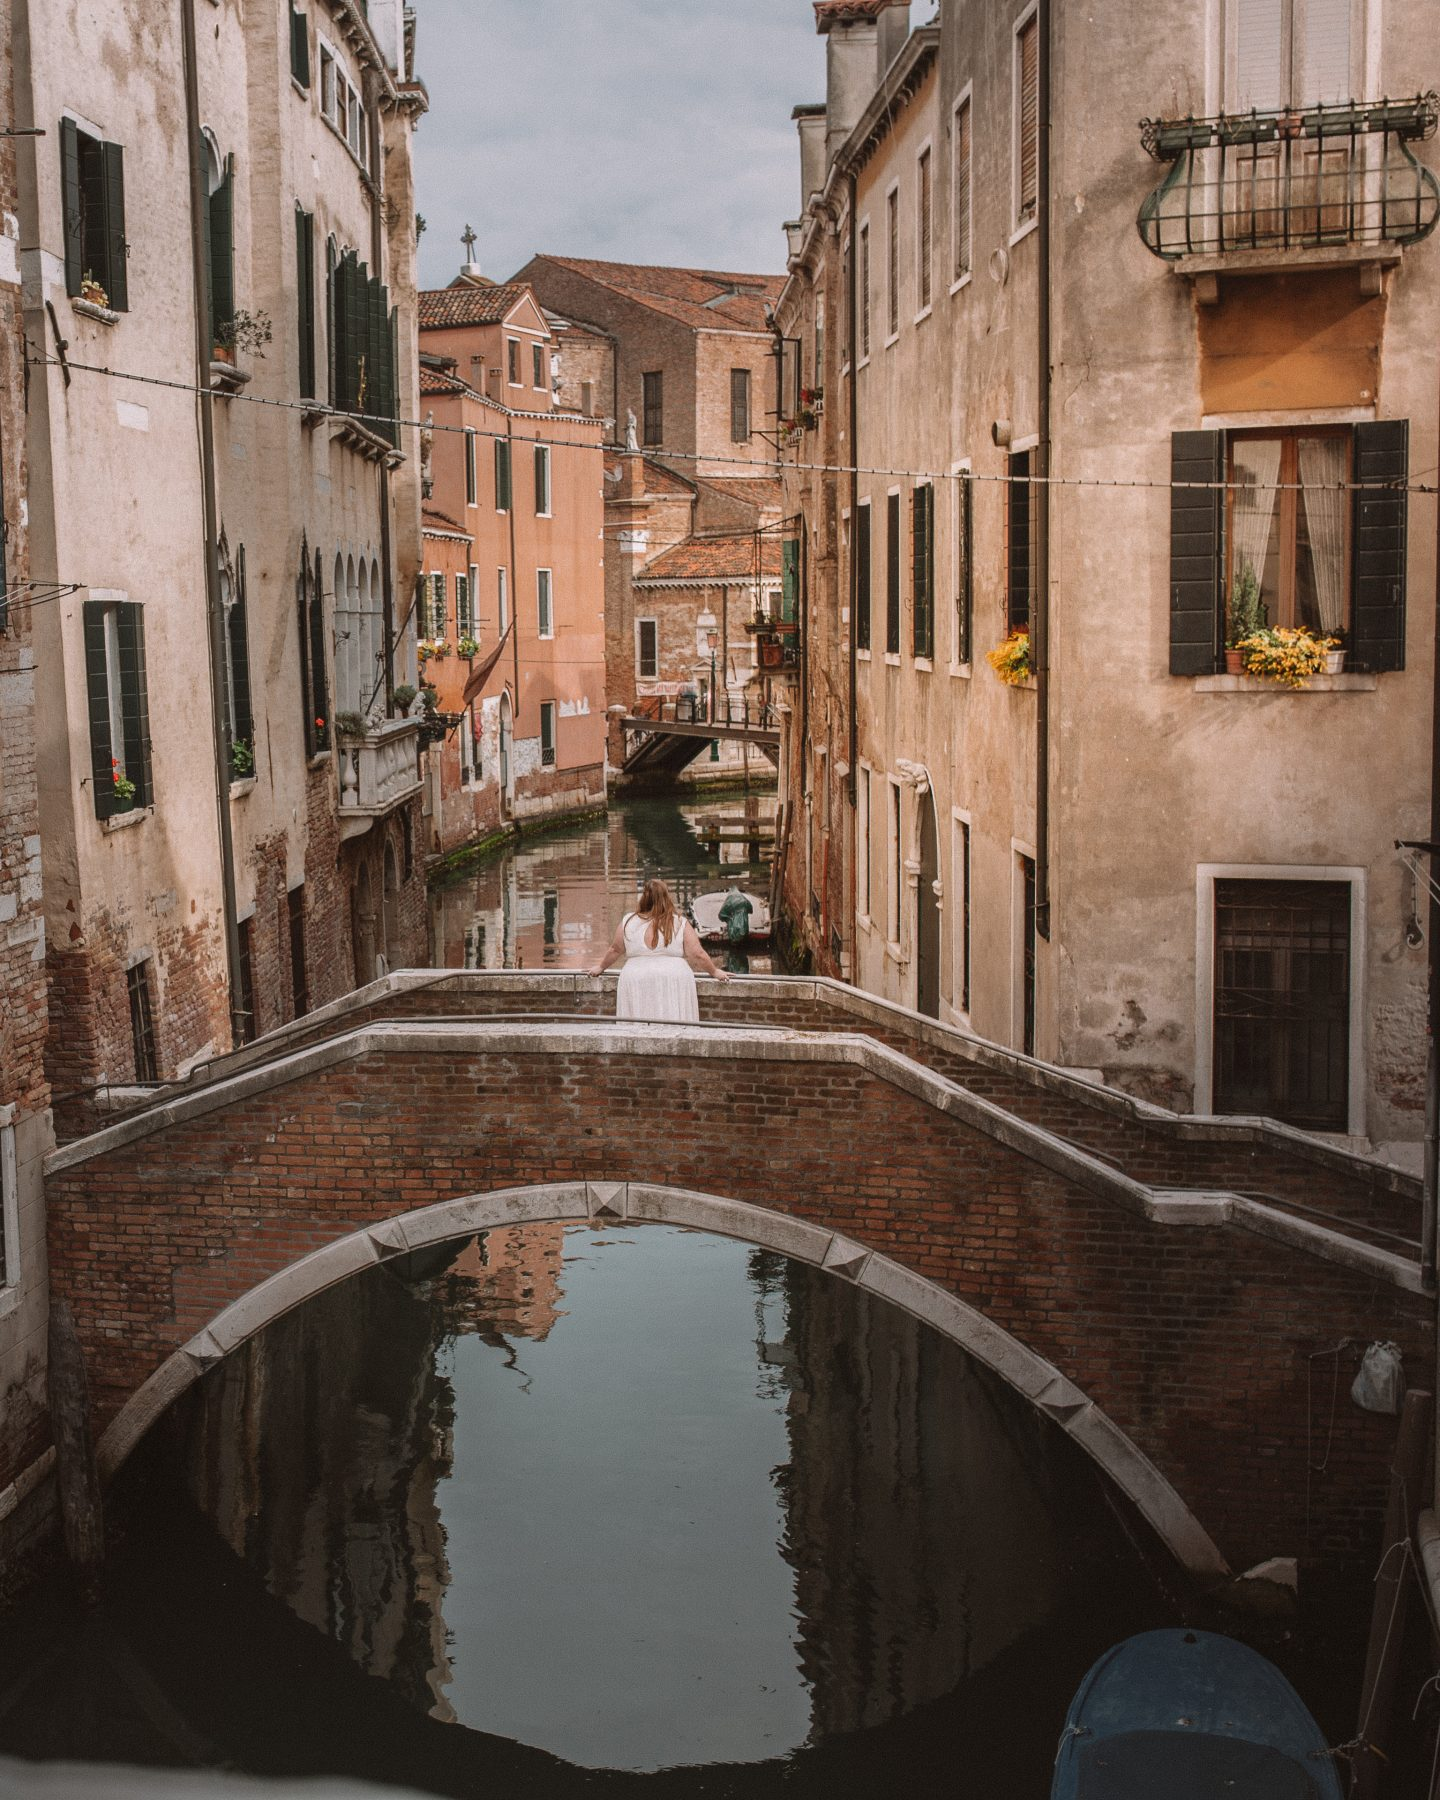 Female standing on bridge over the canal in Venice, Italy